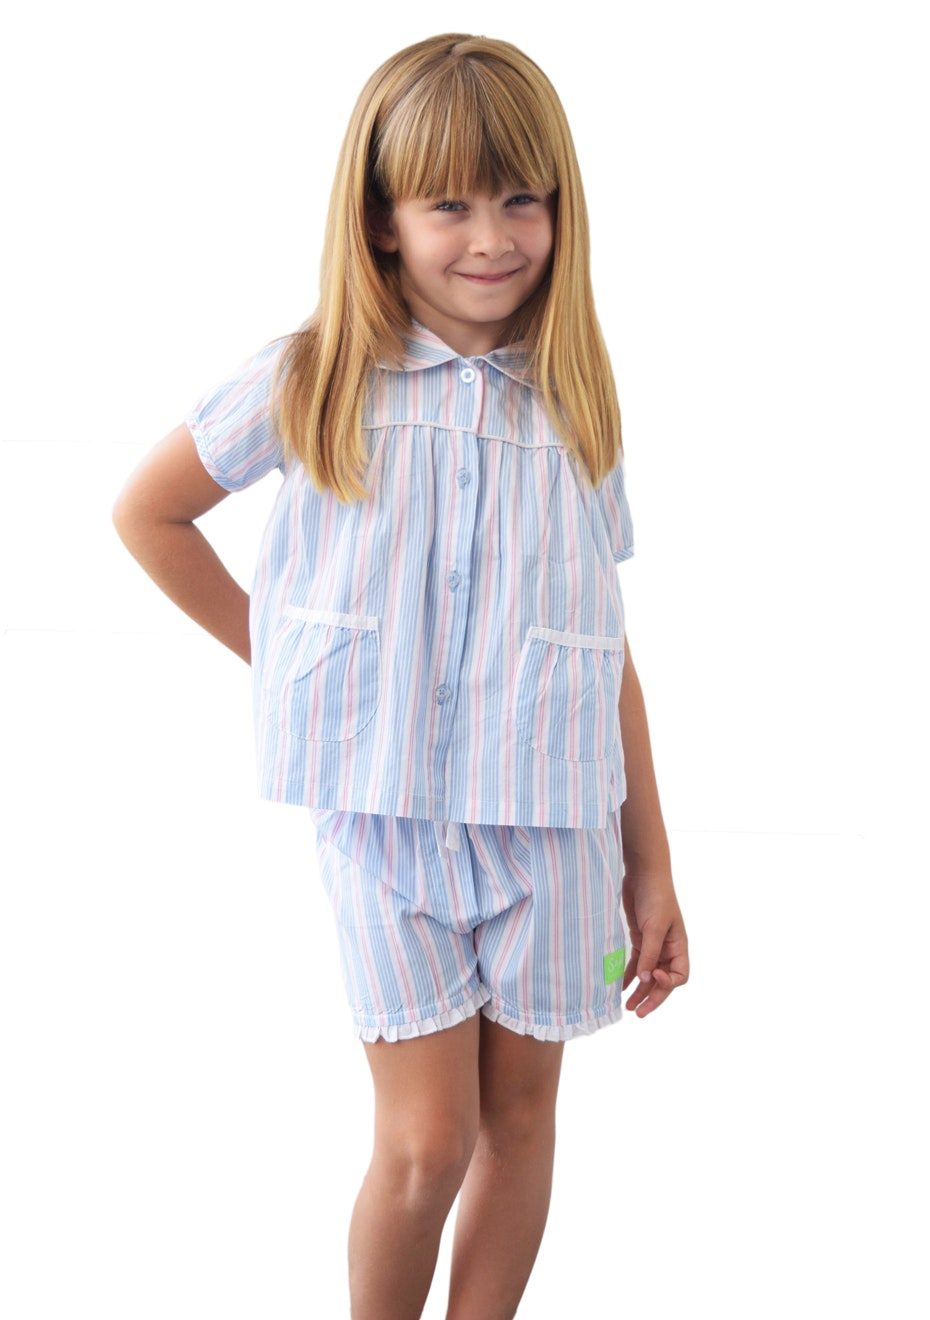 Sant & Able - Hammonds Pink Girl's Playtime Set - Blue & Pink Stripe